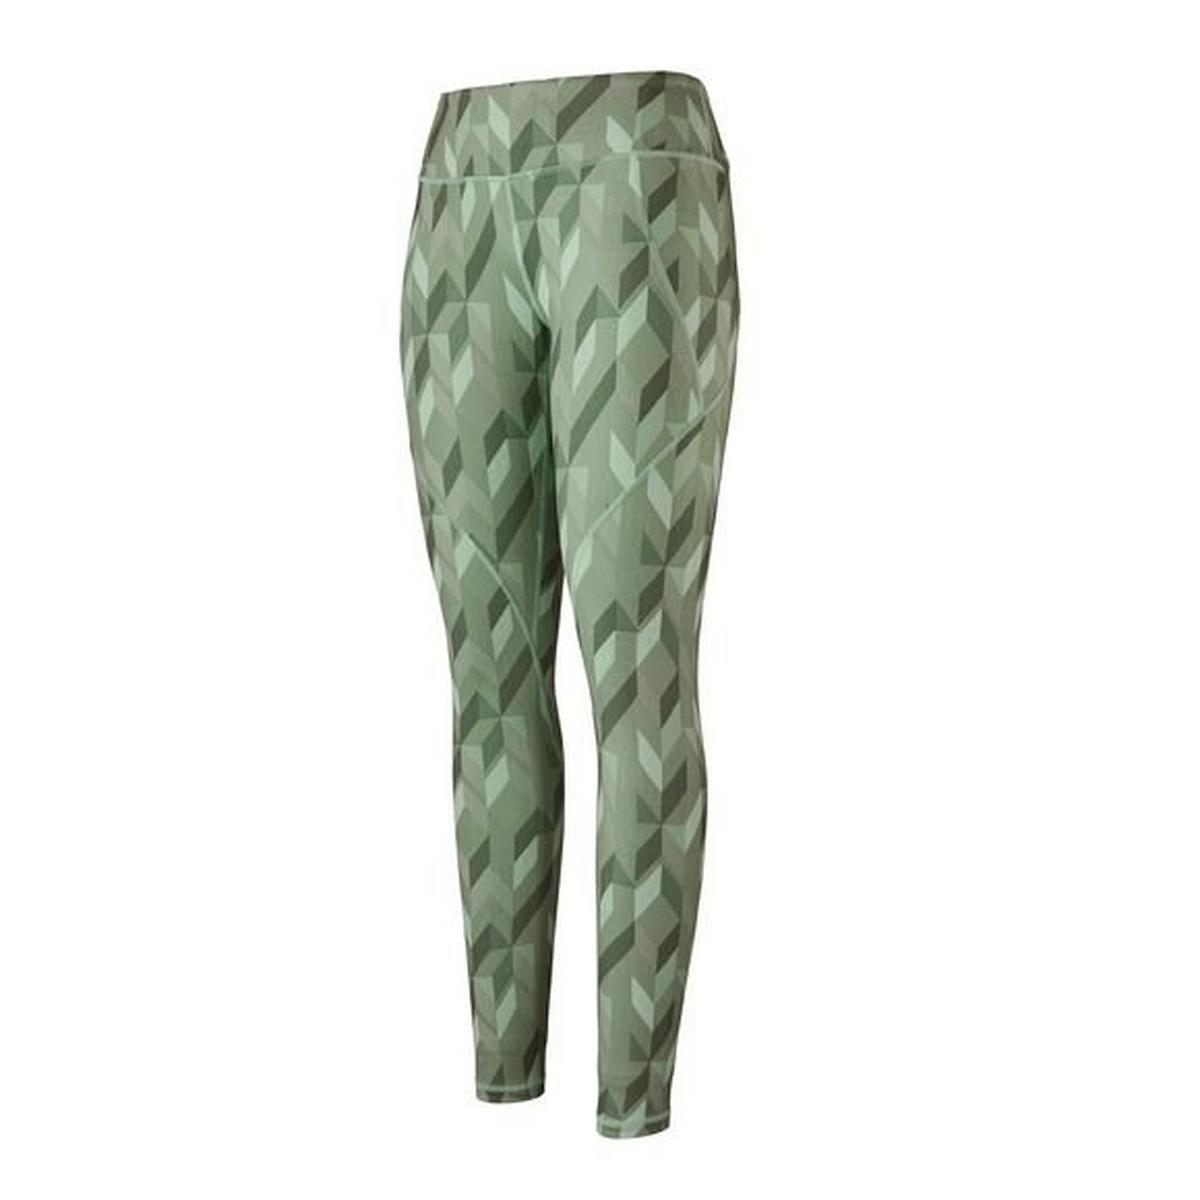 Patagonia Women's Centered Tight - Green